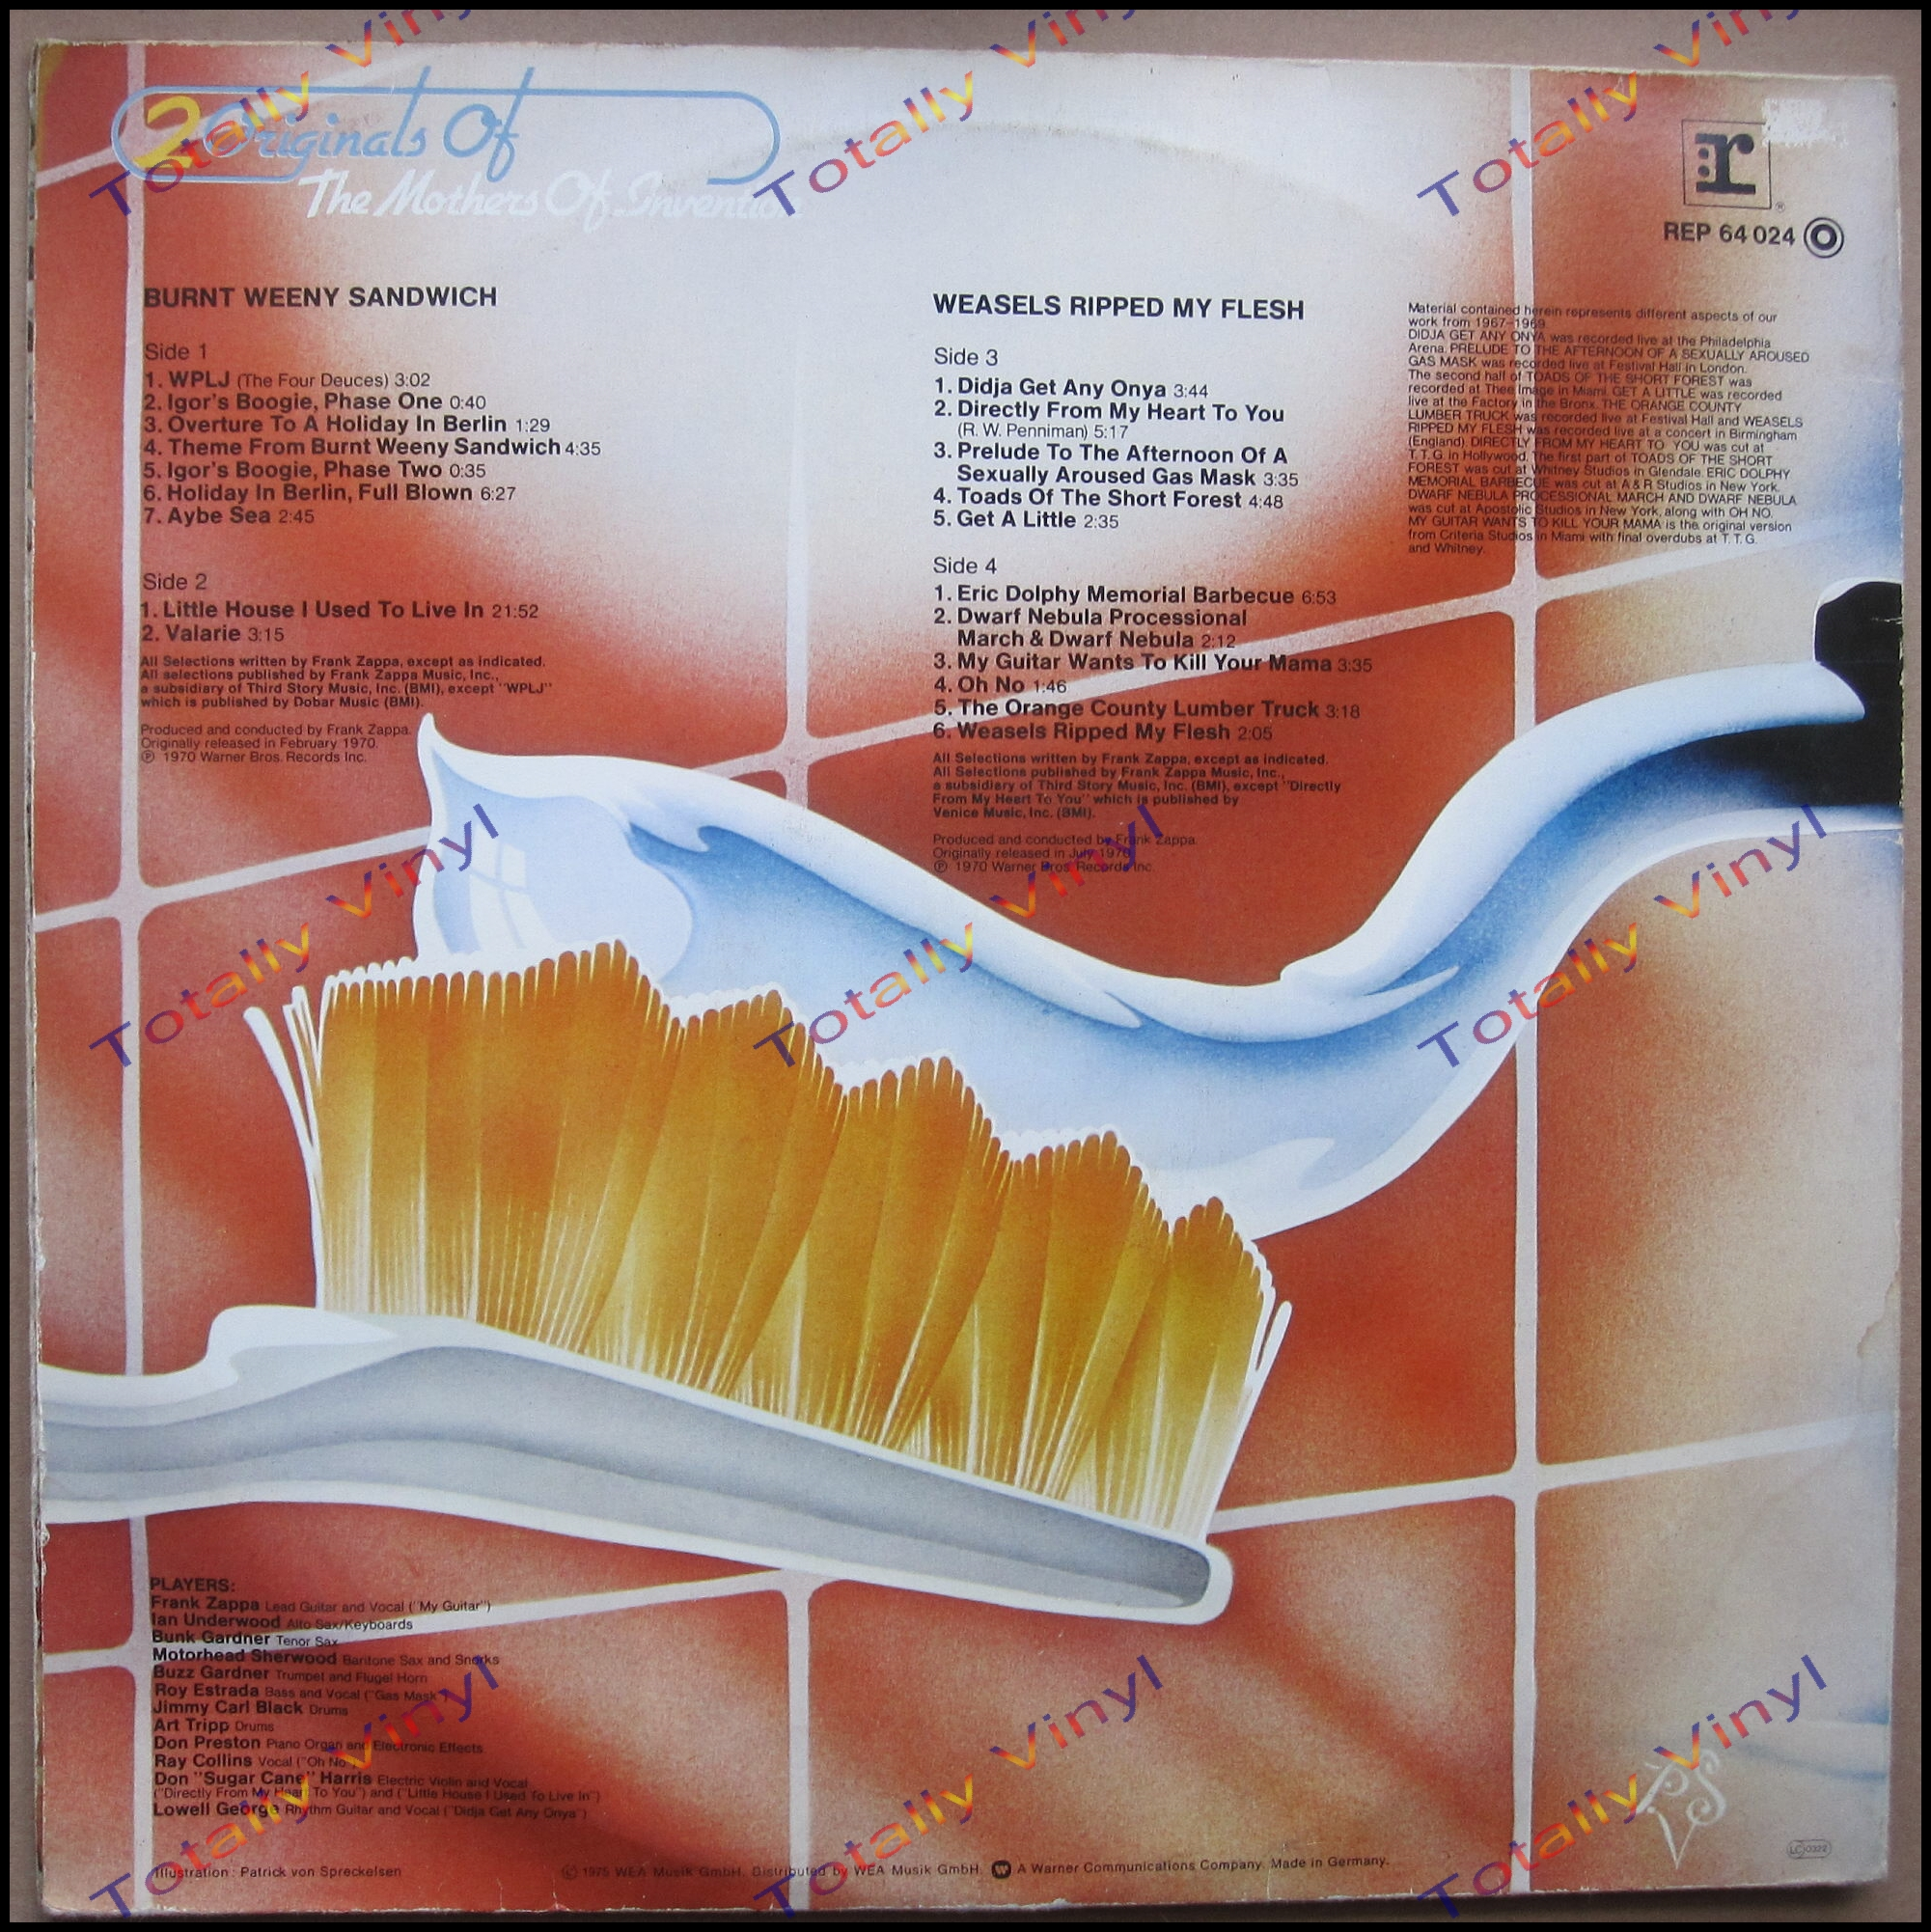 weasels_mothers_of_invention_2_originals_of_the_mothers_of_invention_2lp_2.jpg